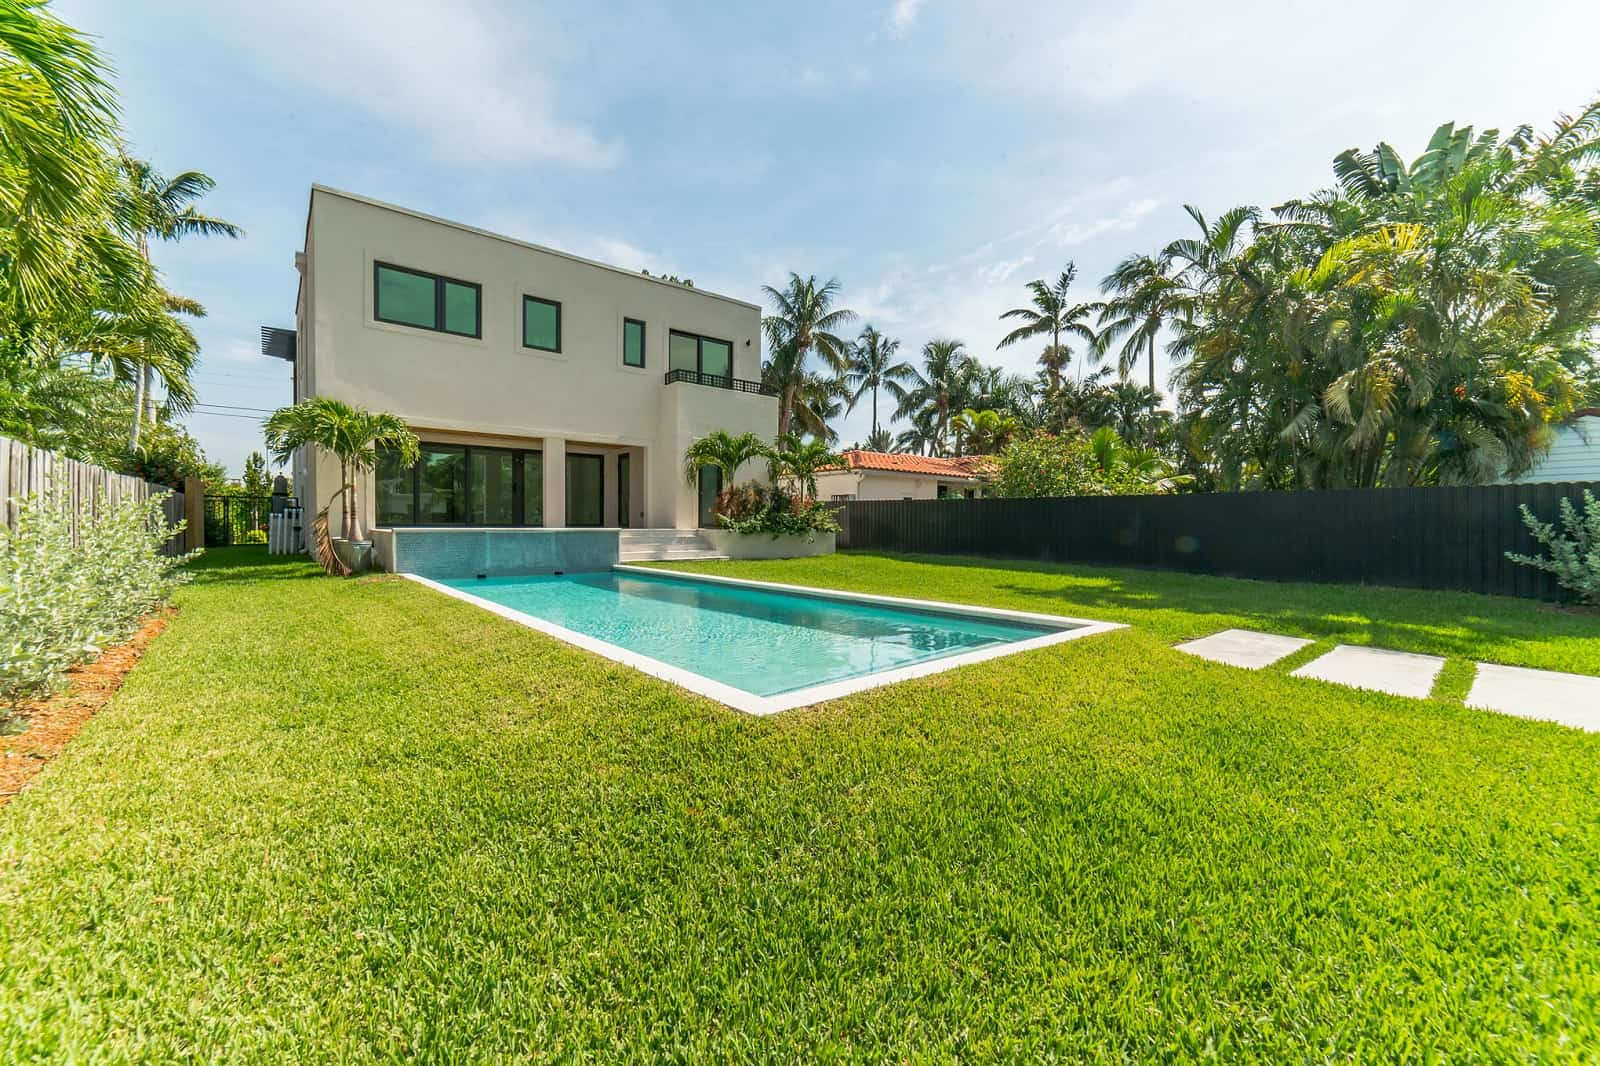 Real Estate Photography in Hollywood - FL - USA - Front View